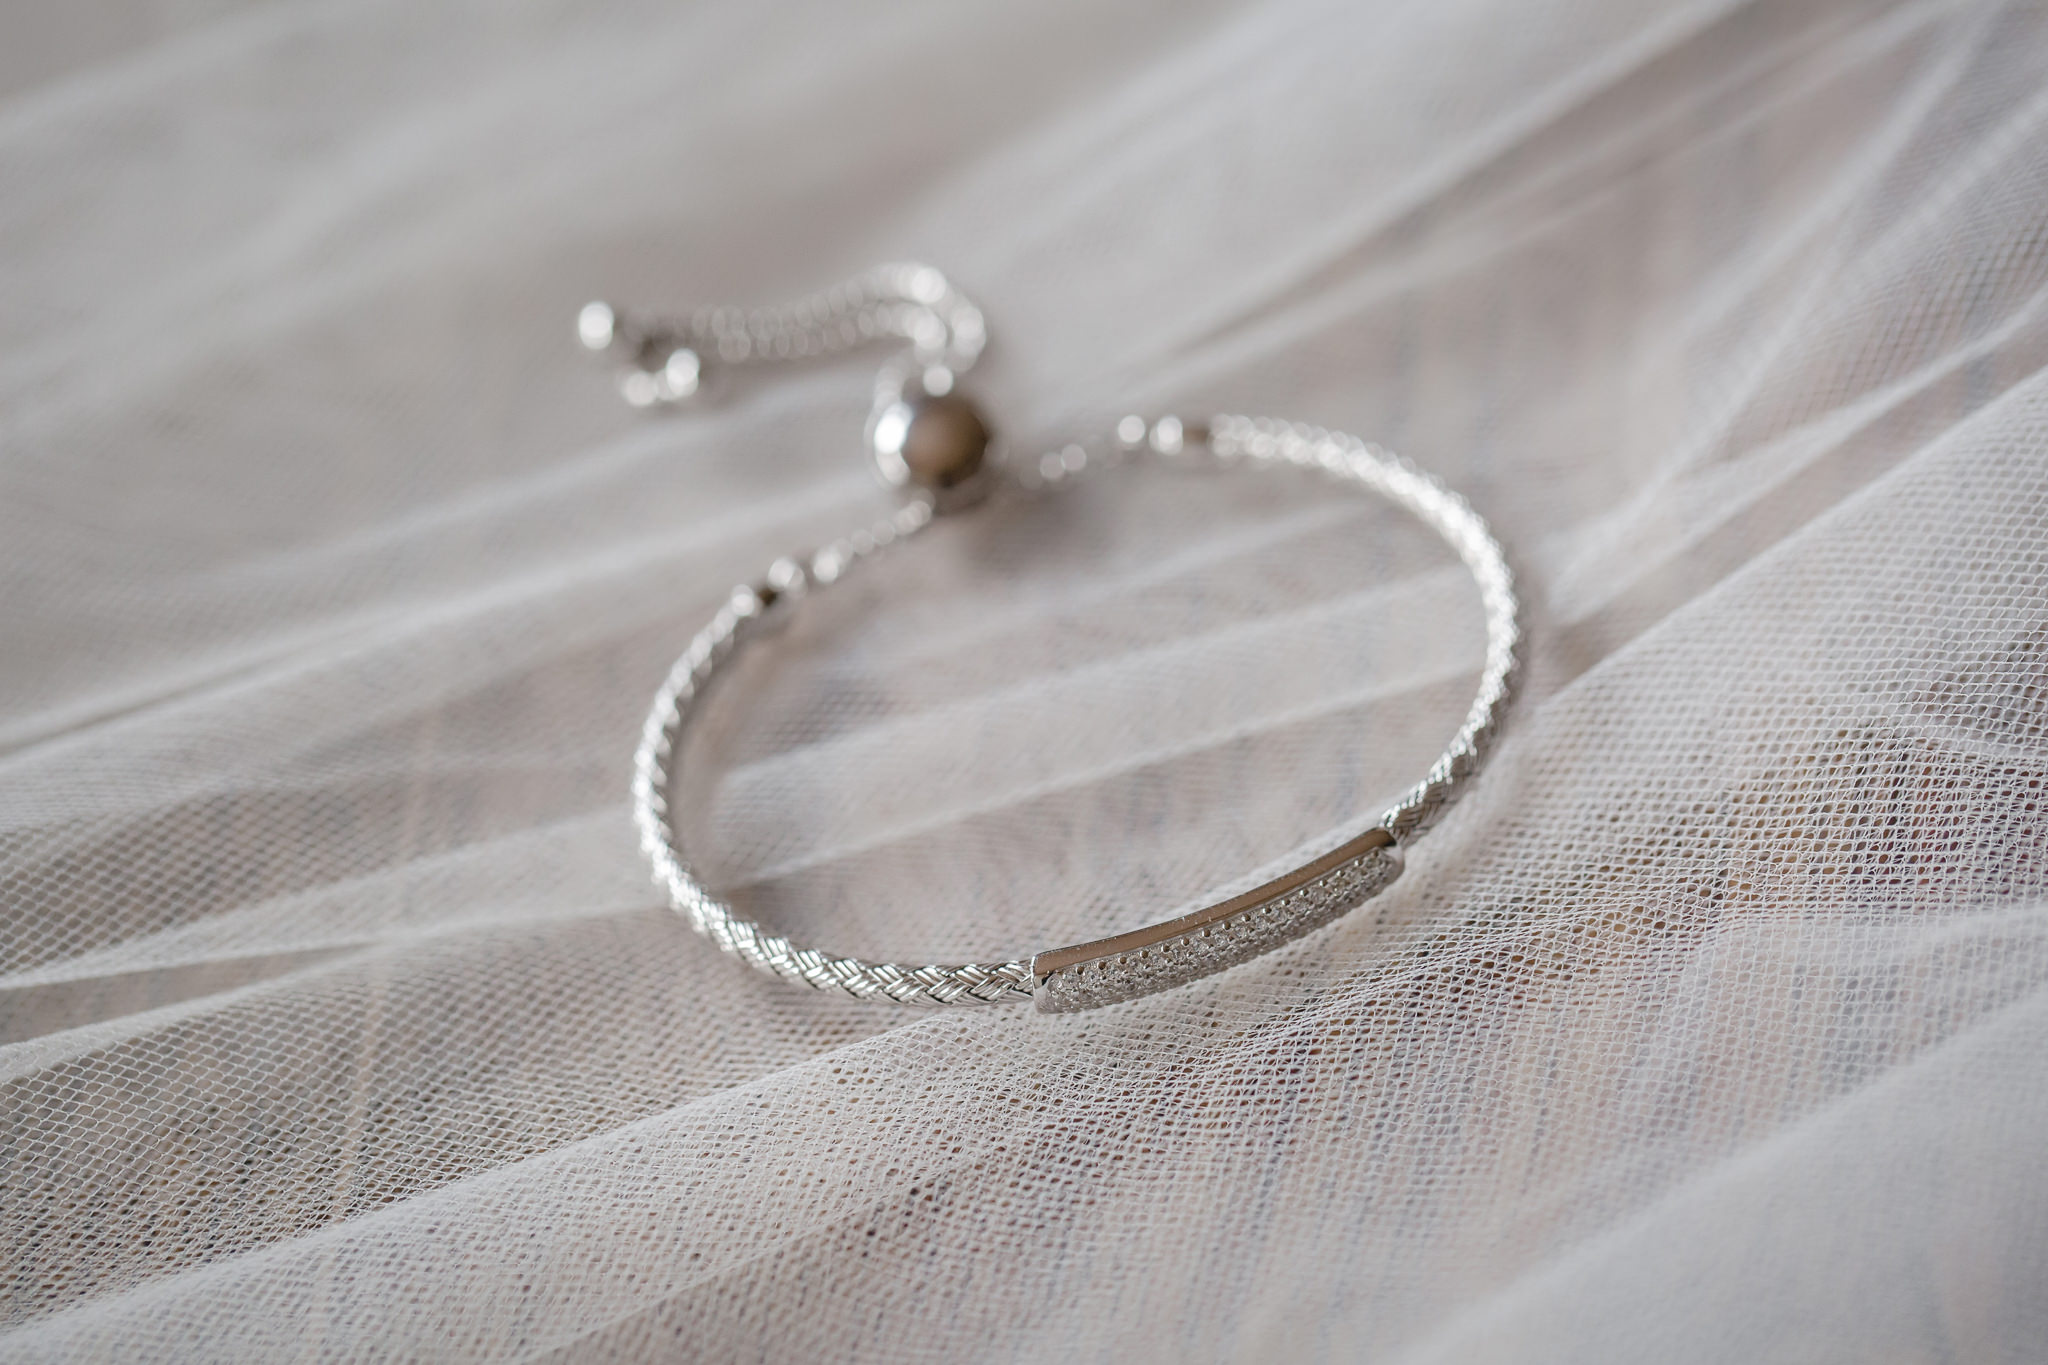 Closeup of a bride's bracelet she'll wear on her wedding day